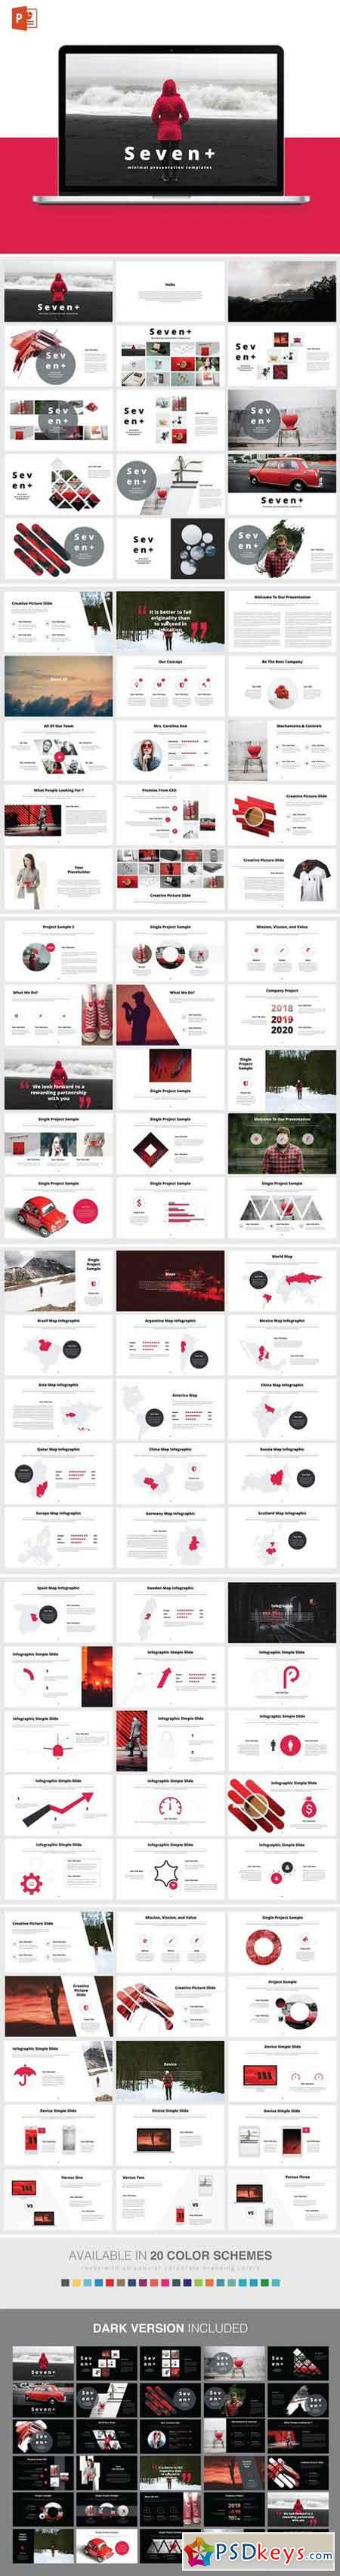 SEVENT+ POWERPOINT Template 2232943